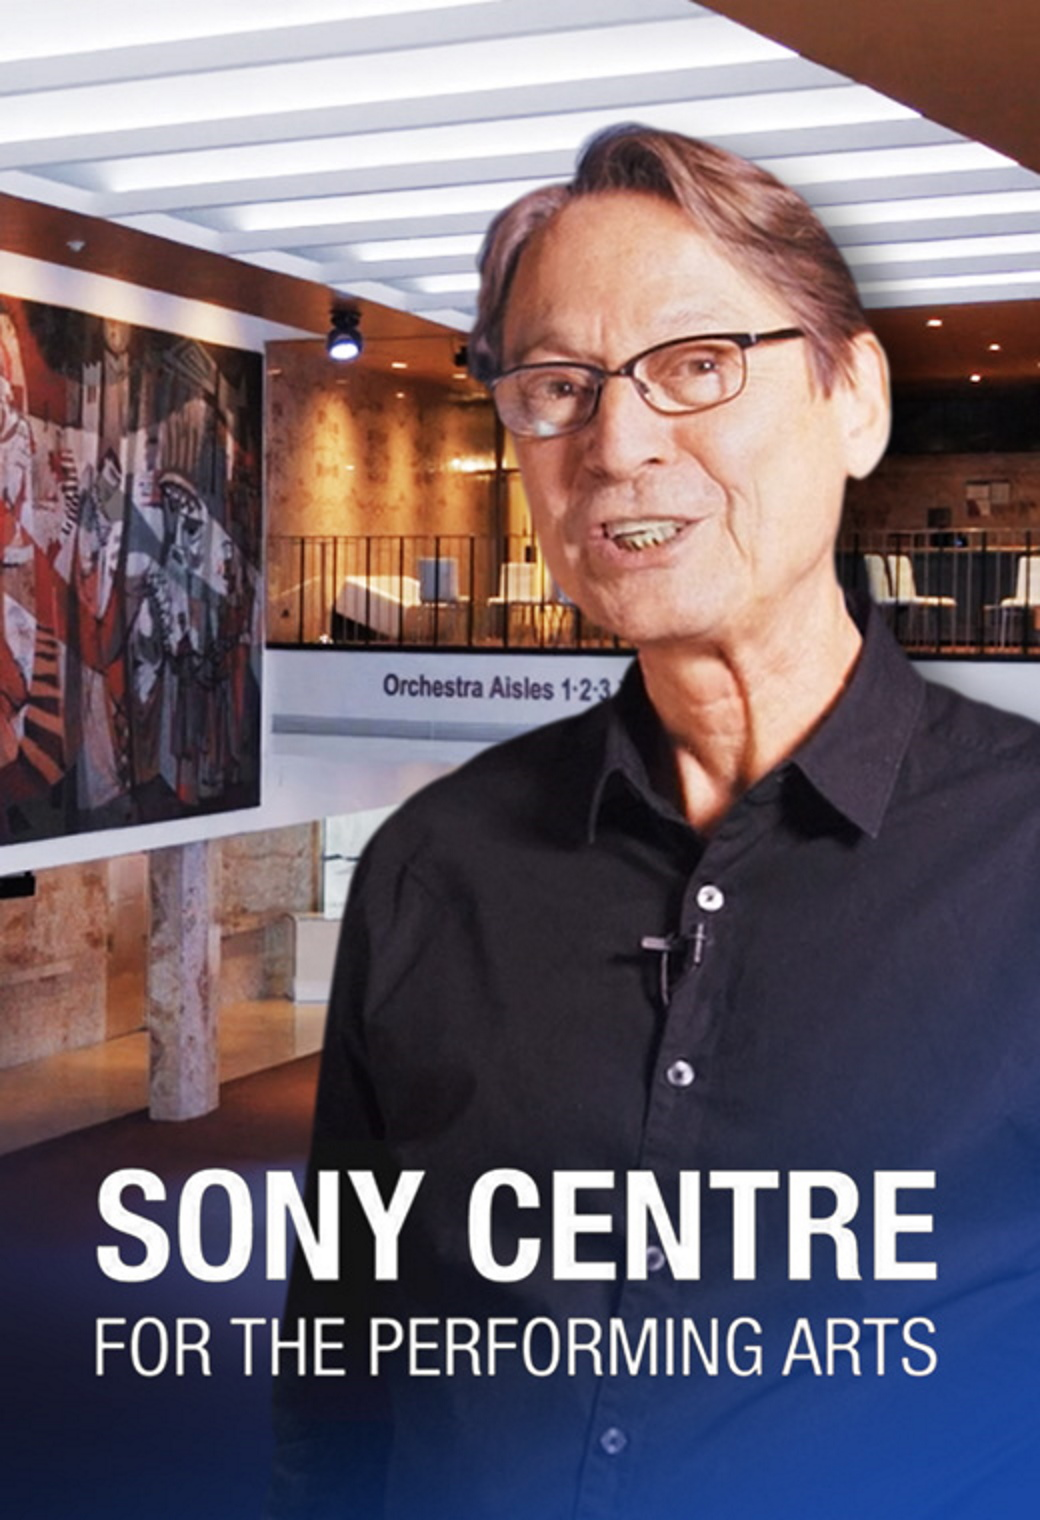 Sony-Centre-Commercial-Poster